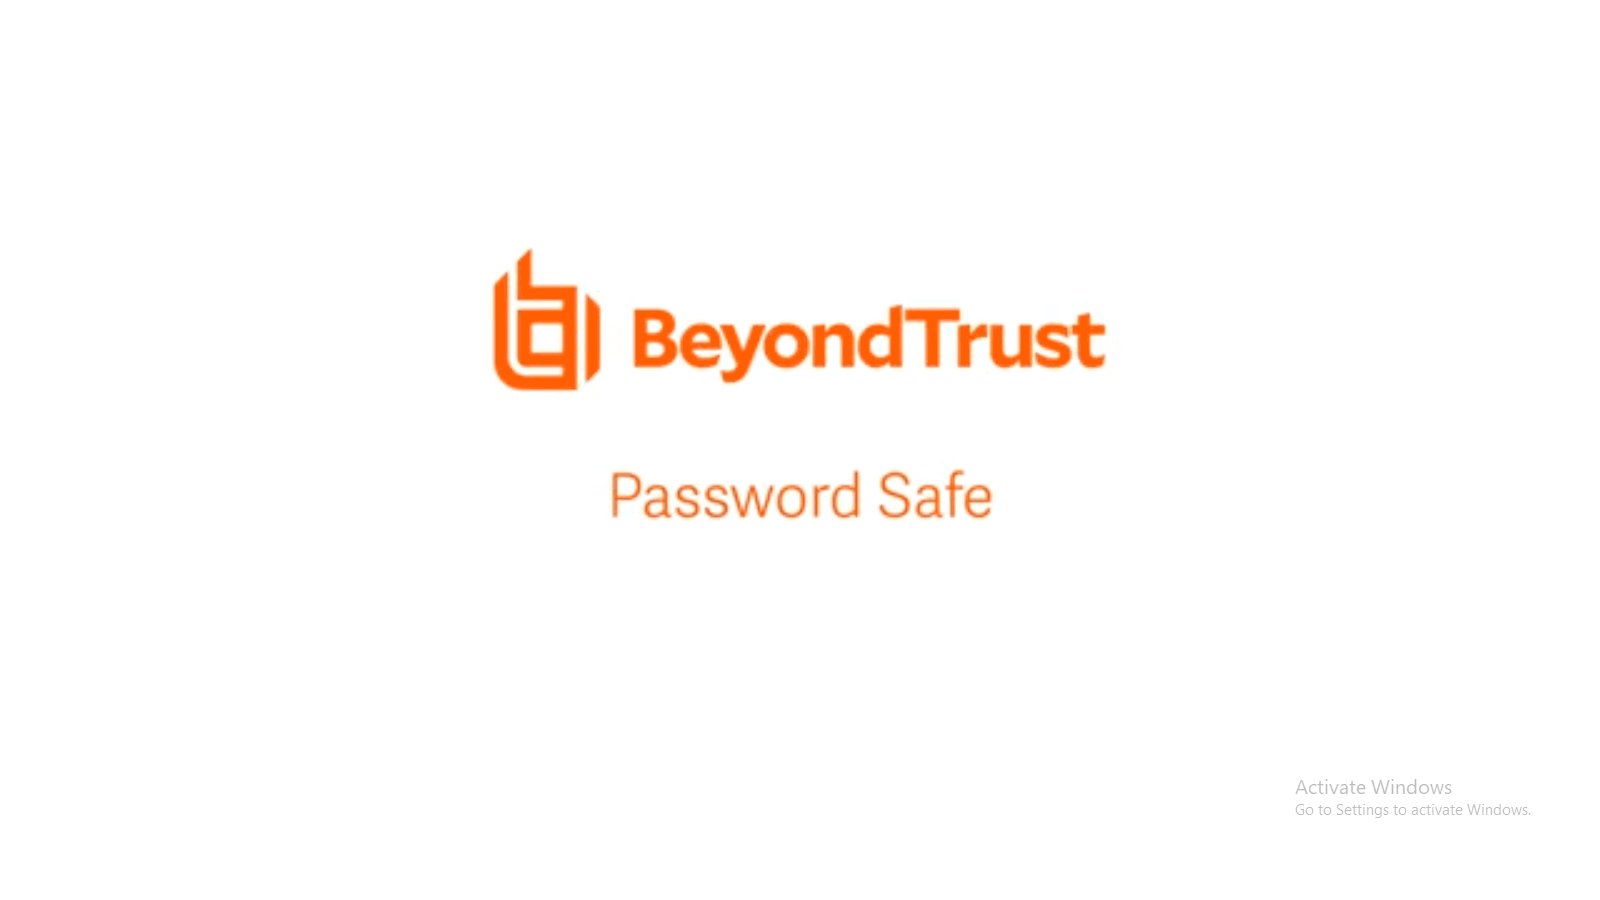 Digit Labs - PasswordSafe - Beyond Trust